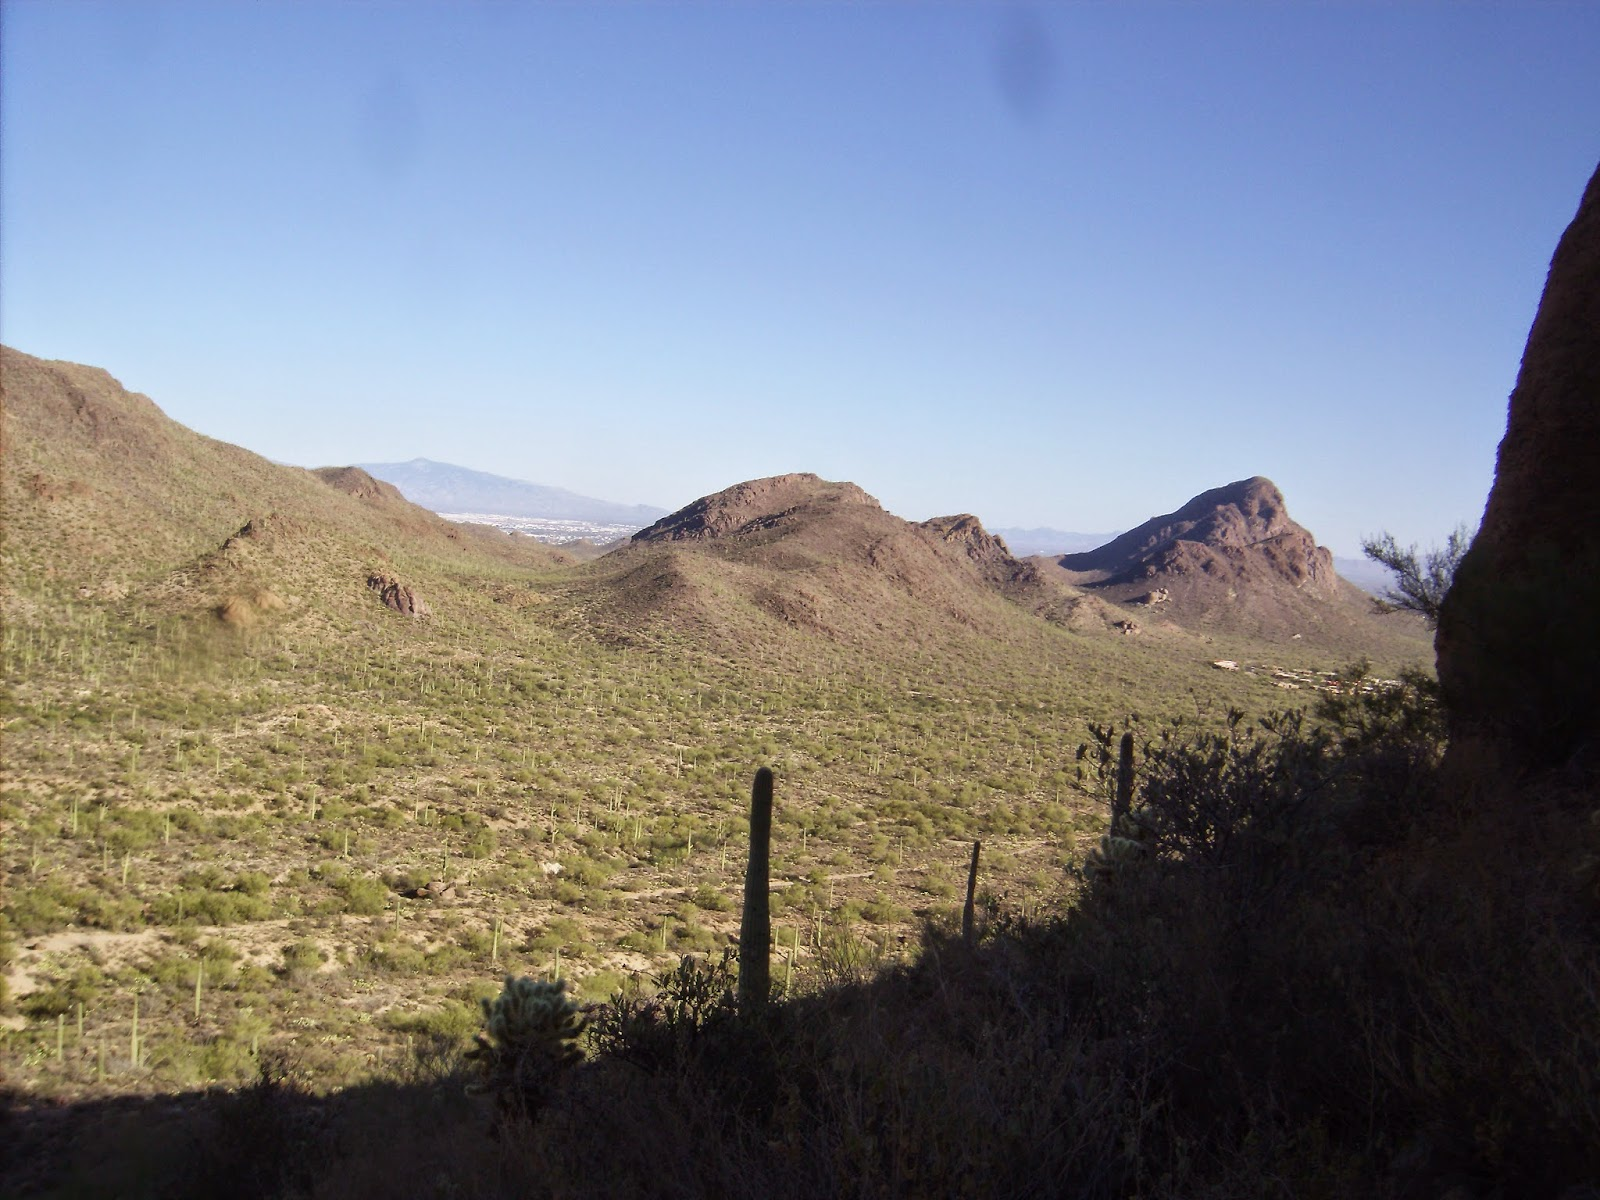 views while hiking in tucson mountain park